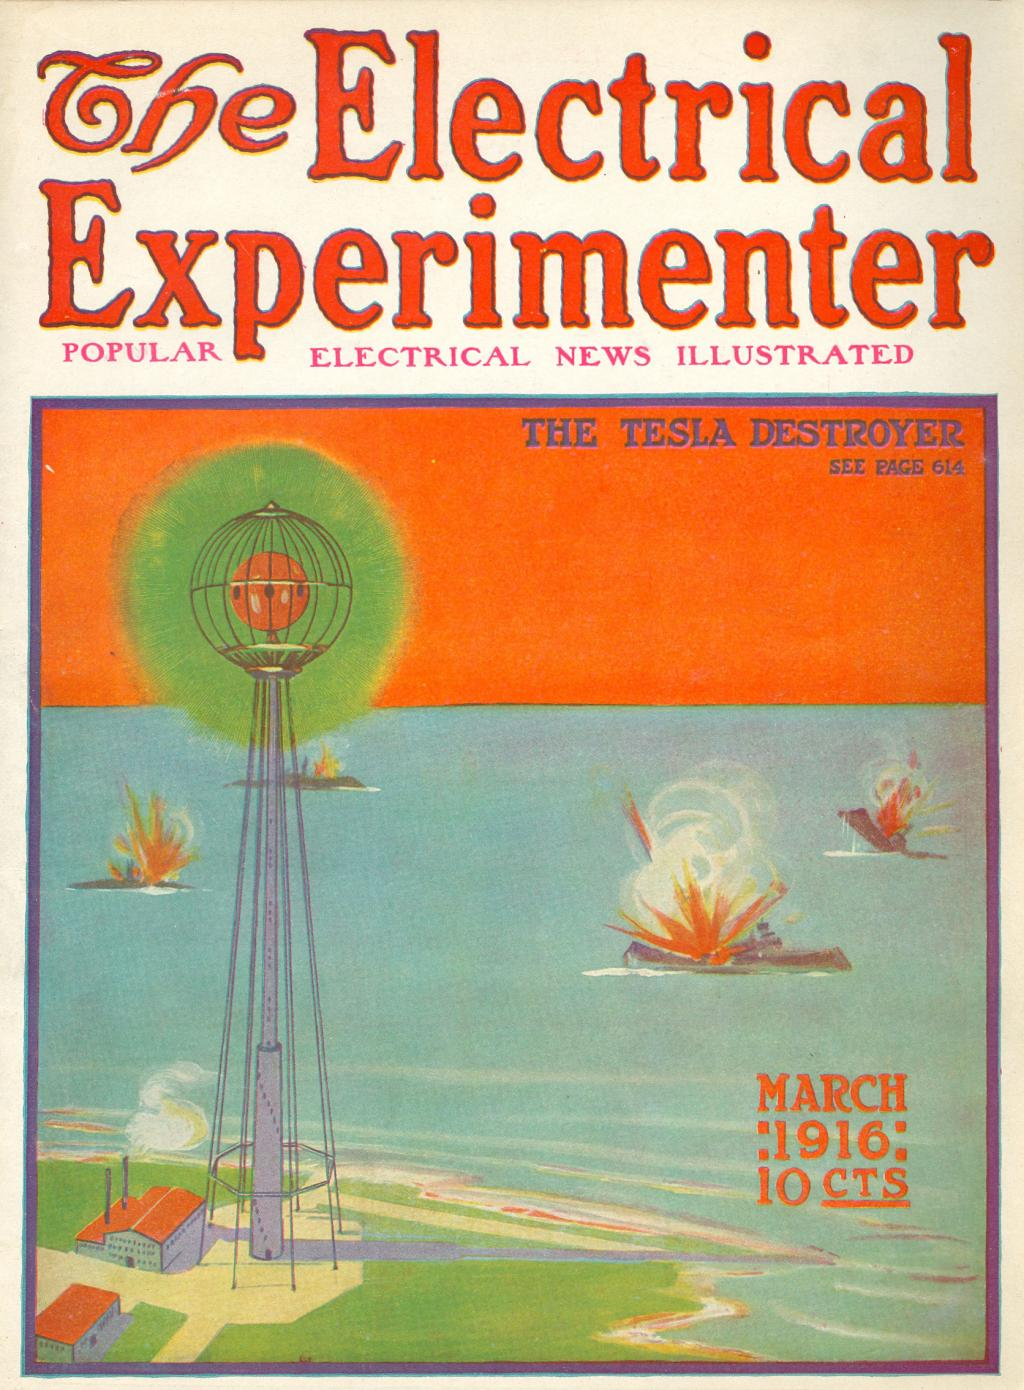 Cover of Electrical Experimenter March 1916 depicting The Tesla Destroyer